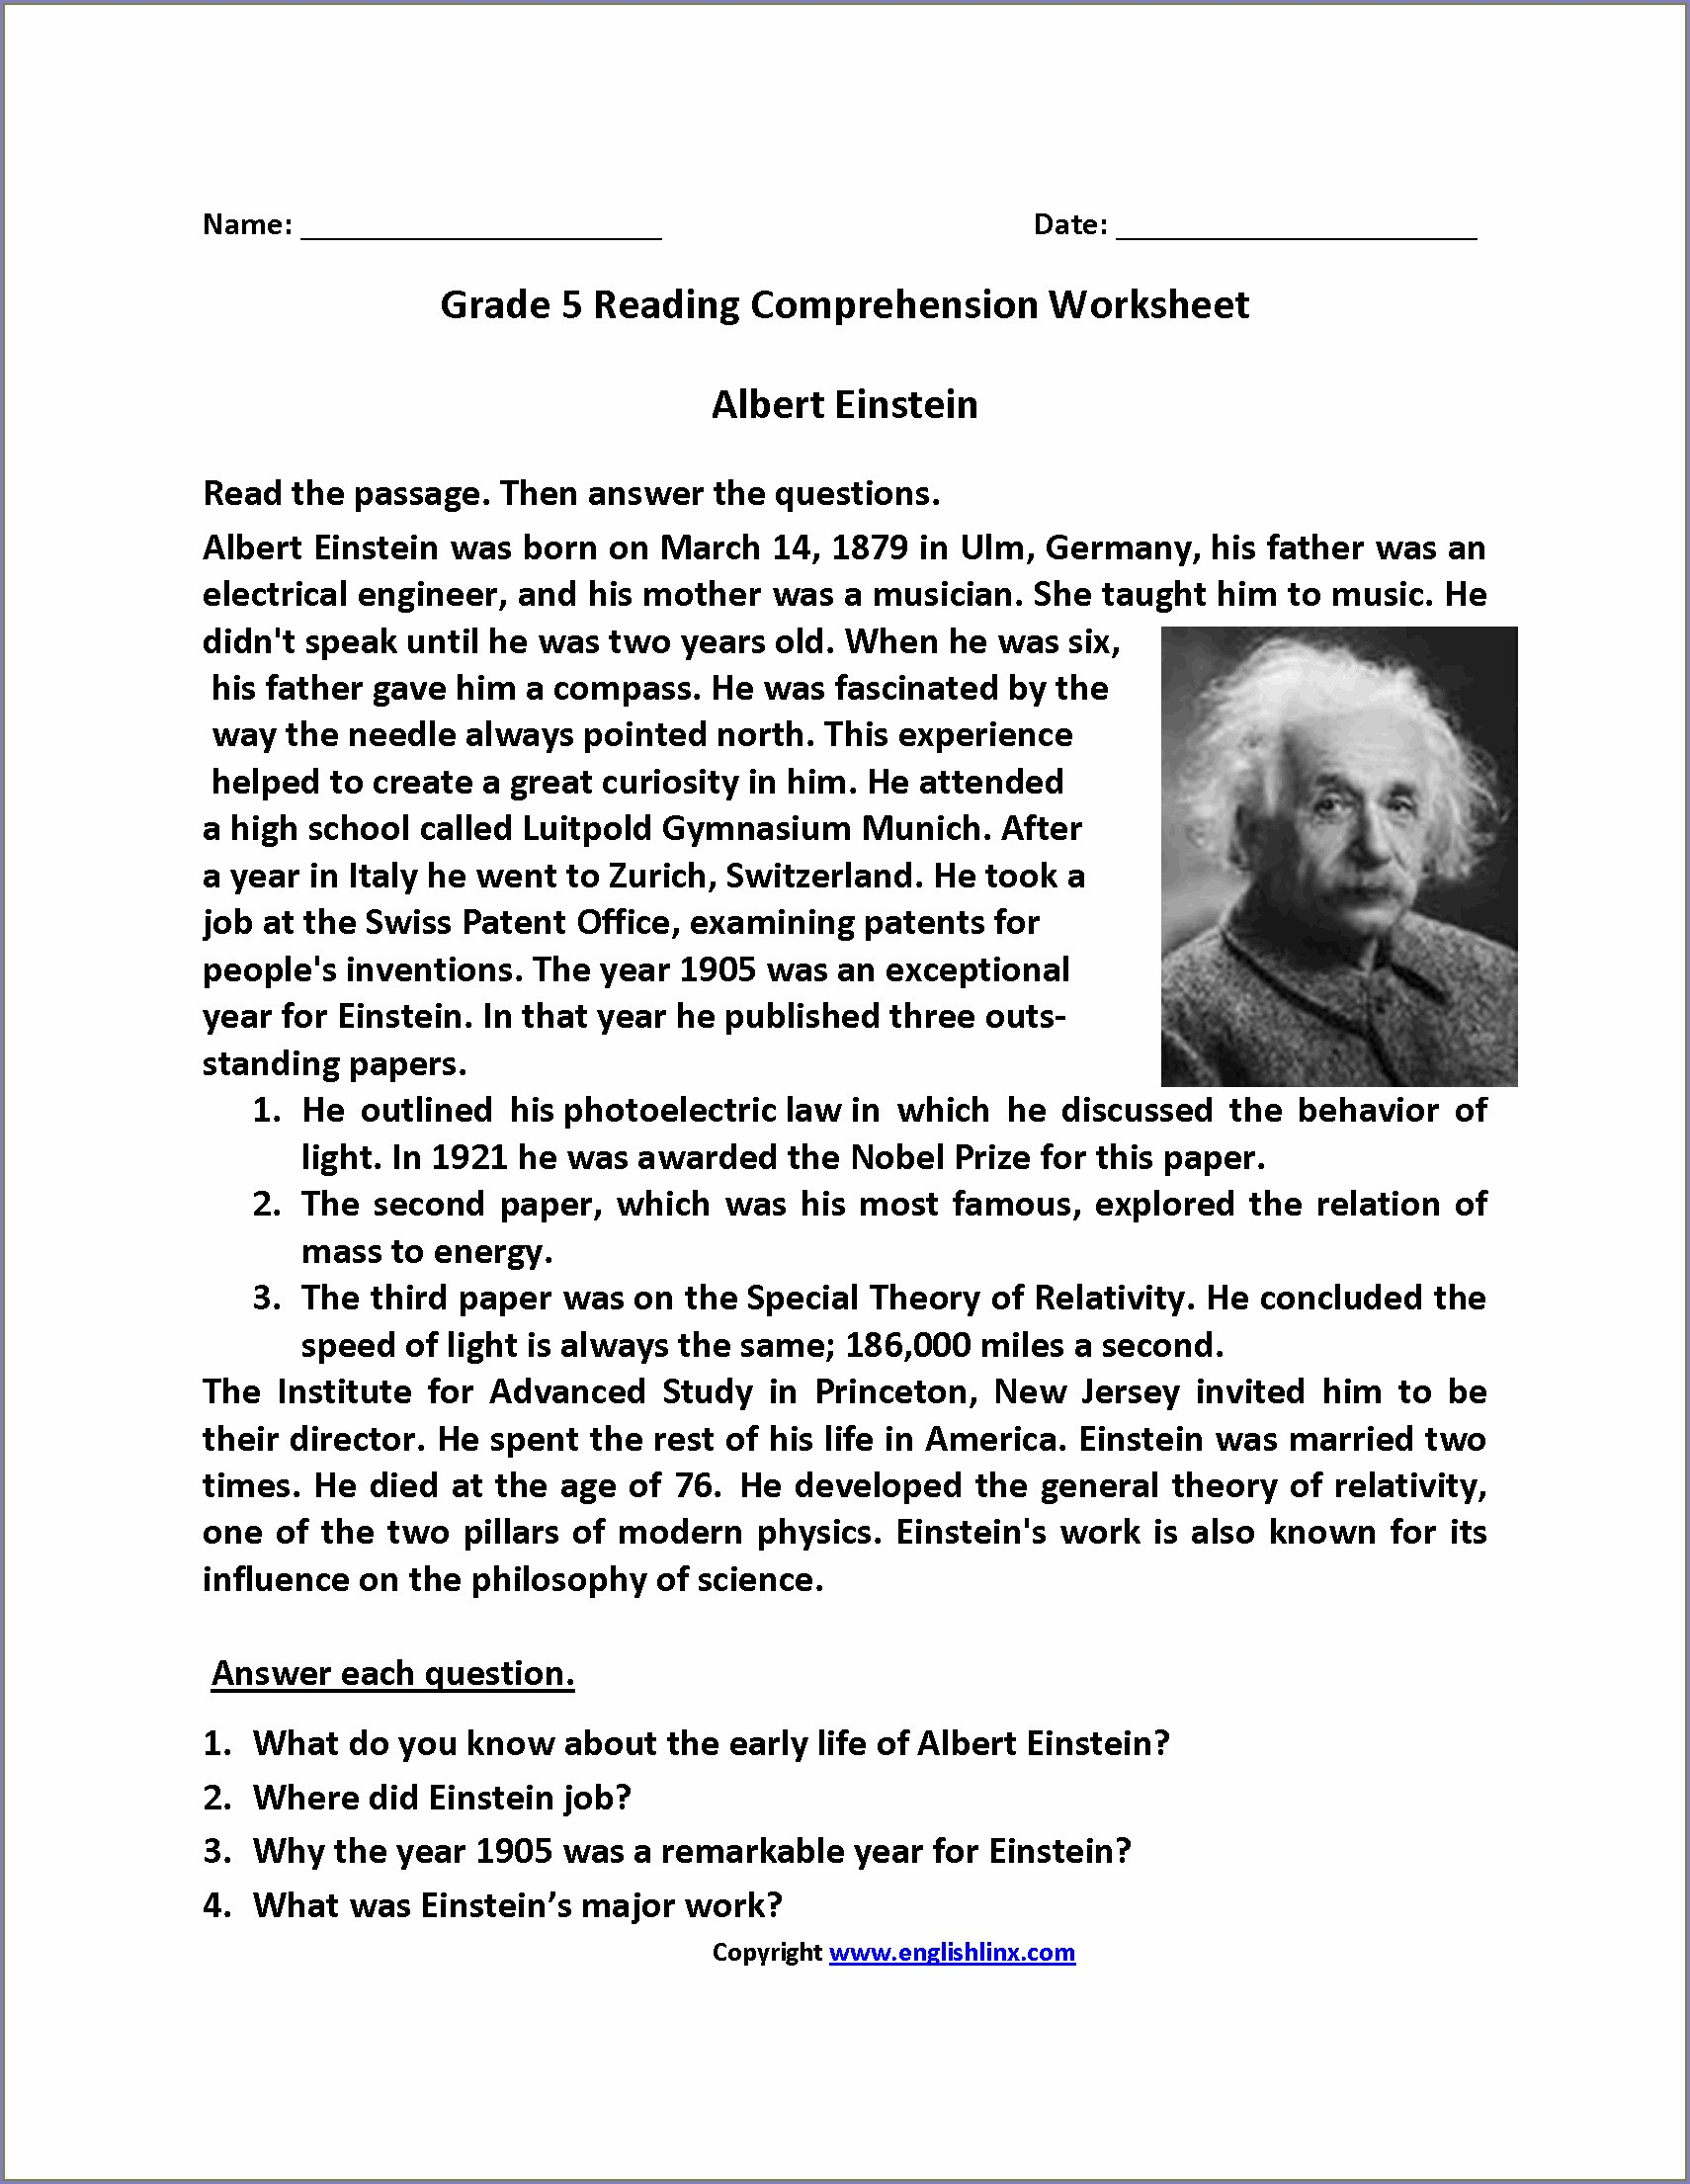 Free Printable English Comprehension Worksheets For Grade 5